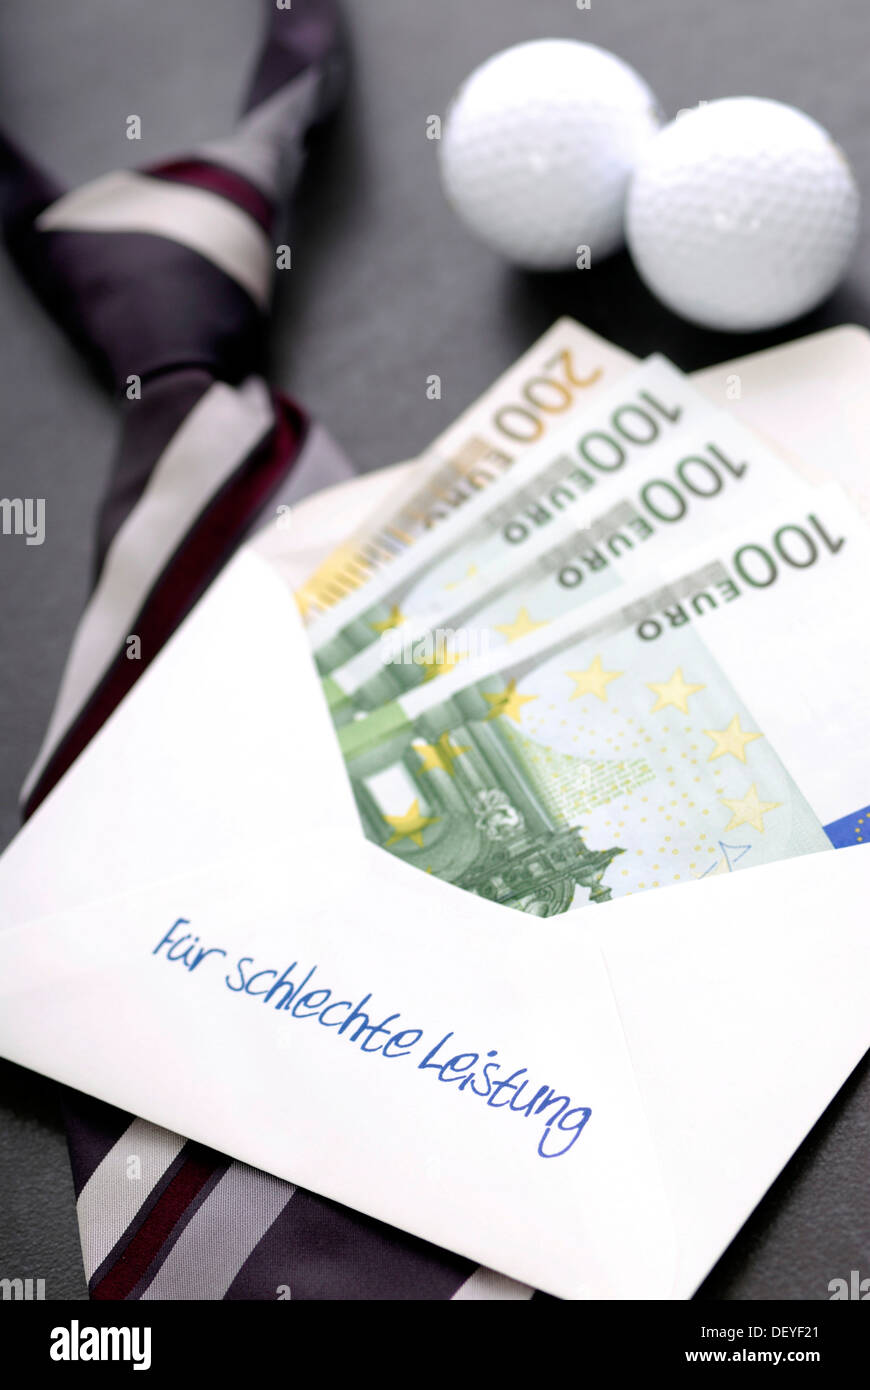 Envelope with writing 'Fuer schlechte Leistung', 'For poor performance' and bank notes, symbolic image for banker bonus - Stock Image